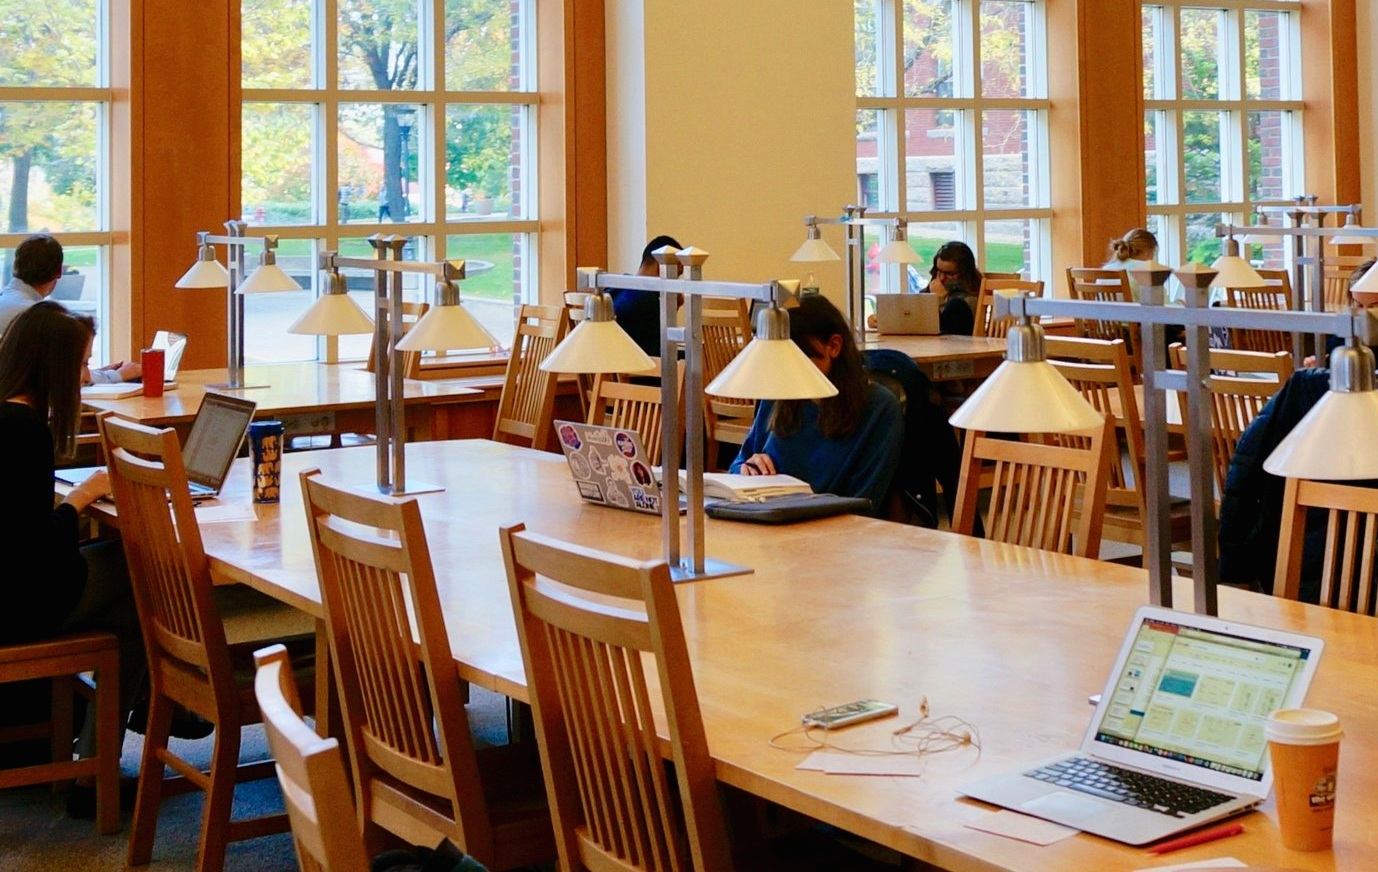 College students studying at tables in a college library. Links to The BLOG PAGE OF THIS SITE.